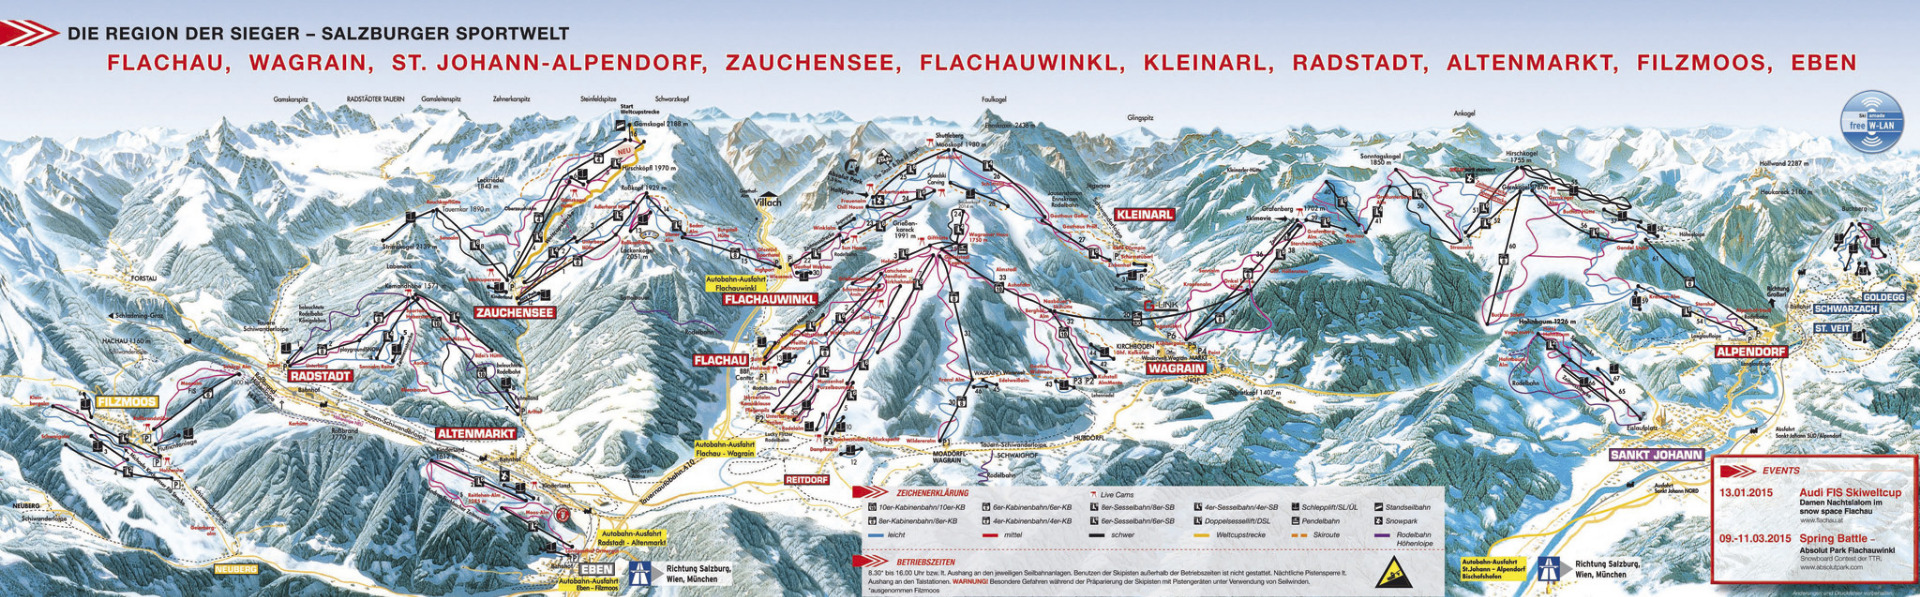 Zauchensee piste map Lion Alpin